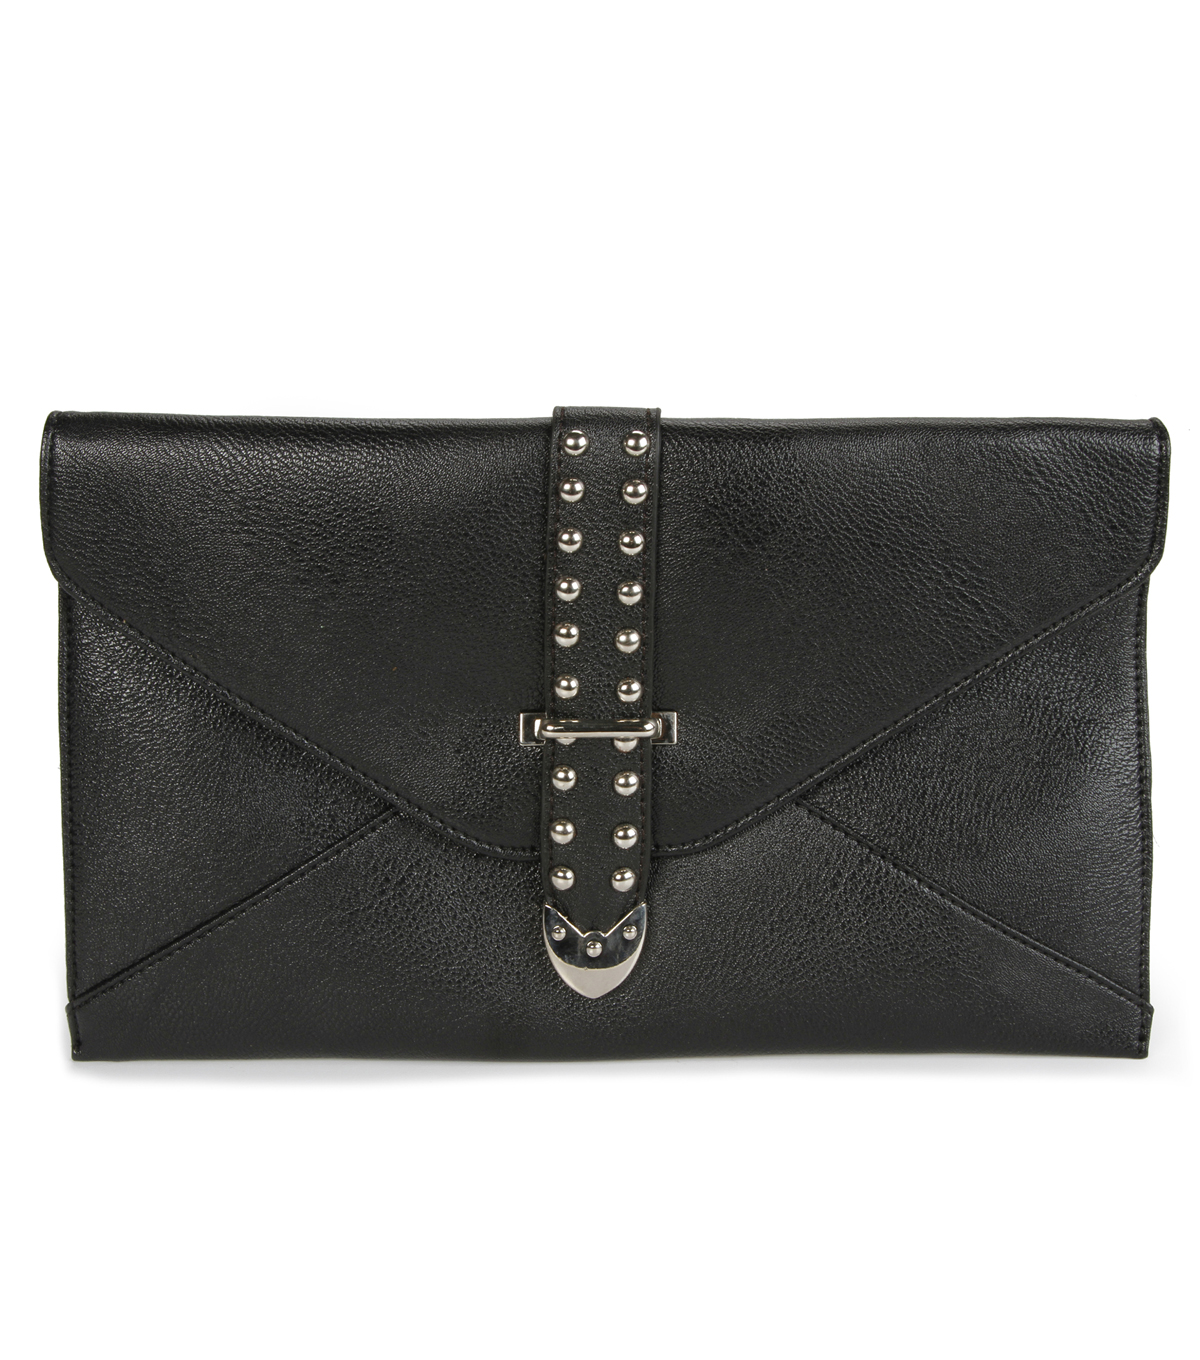 Oxford Street Jewelry Co. ENVELOPE BLACK WHITE CLUTCH